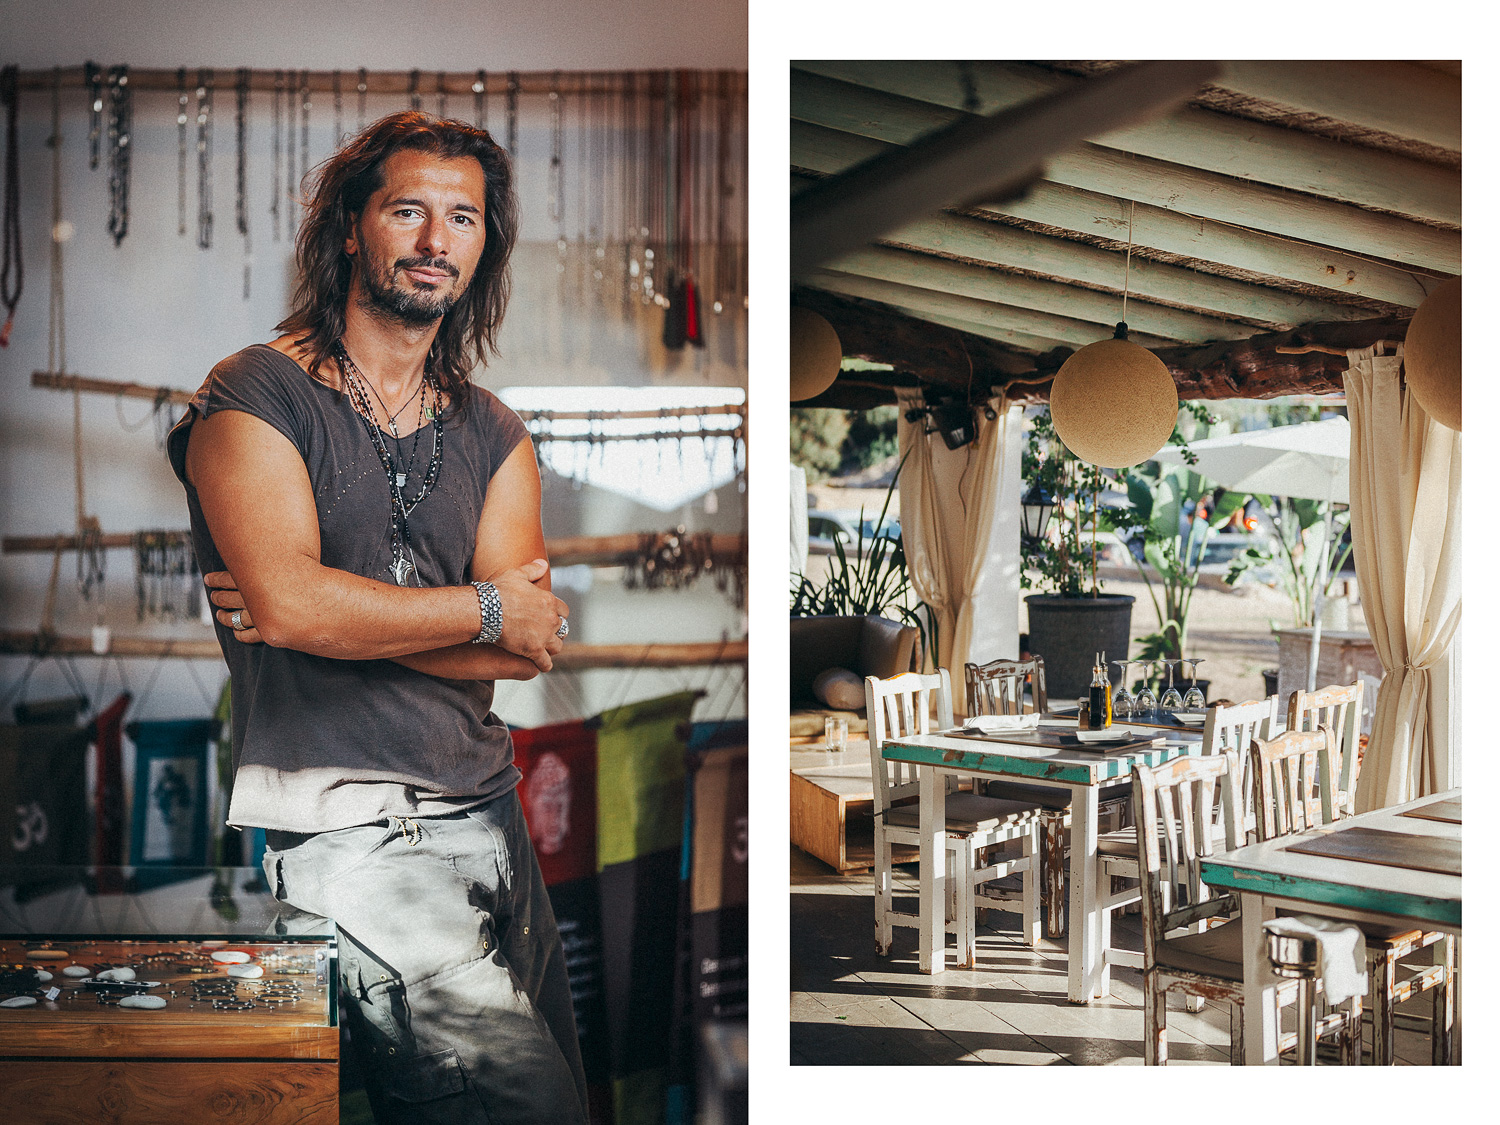 Elements-Ibiza-restaurant,-juice-bar,-lounge-bar,-Cala-Benirras,Gianluca-Bedin---Jewellery-maker,-Ibiza